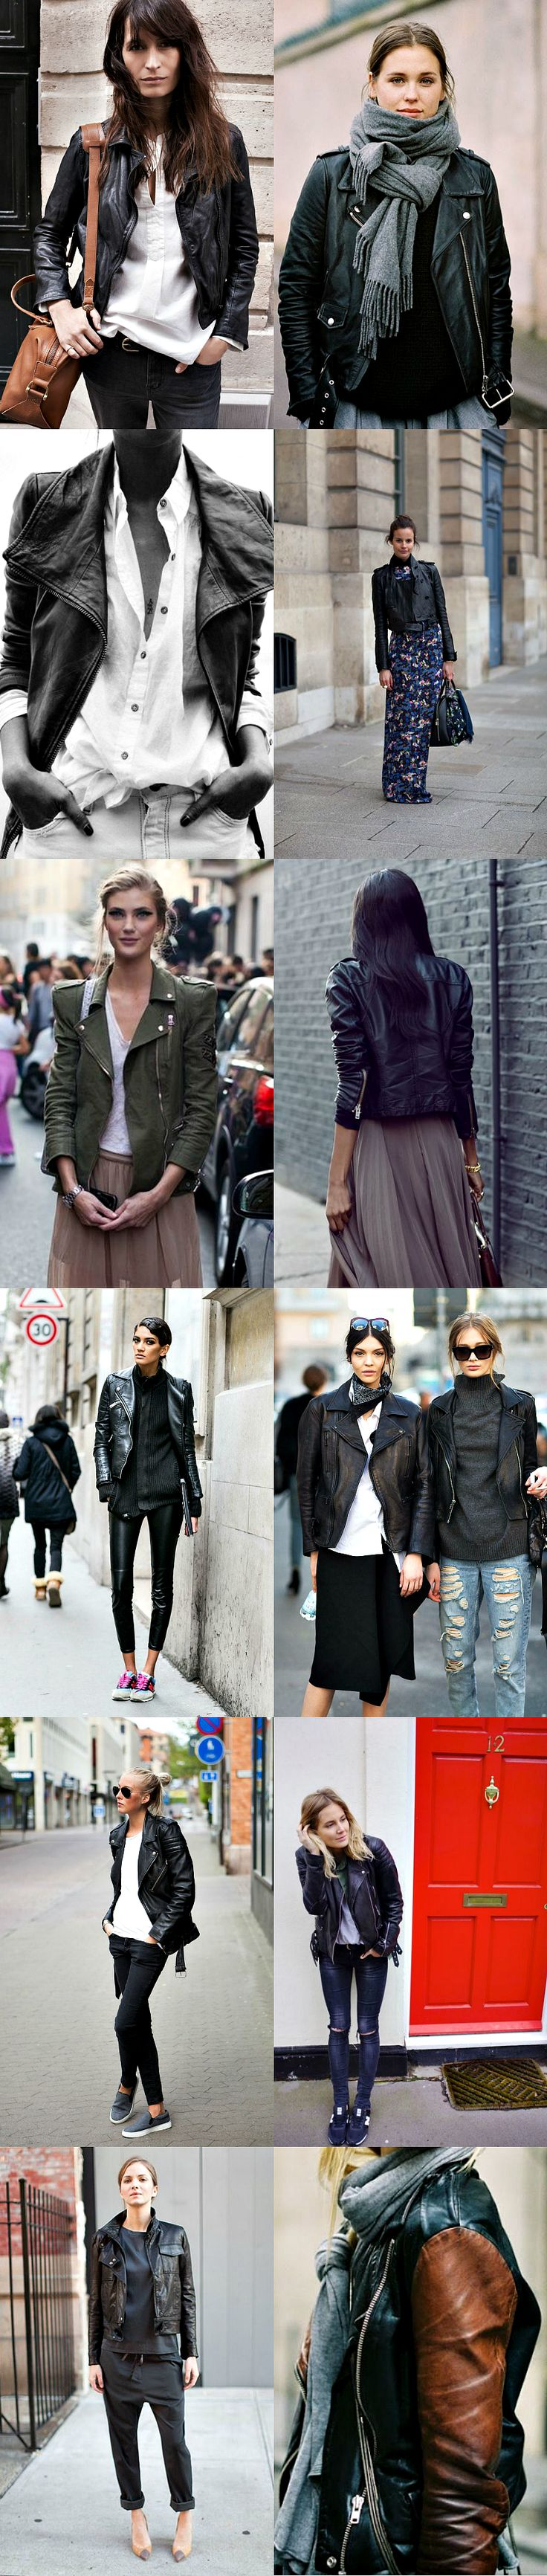 friday pins: moto jacket street style - Bliss